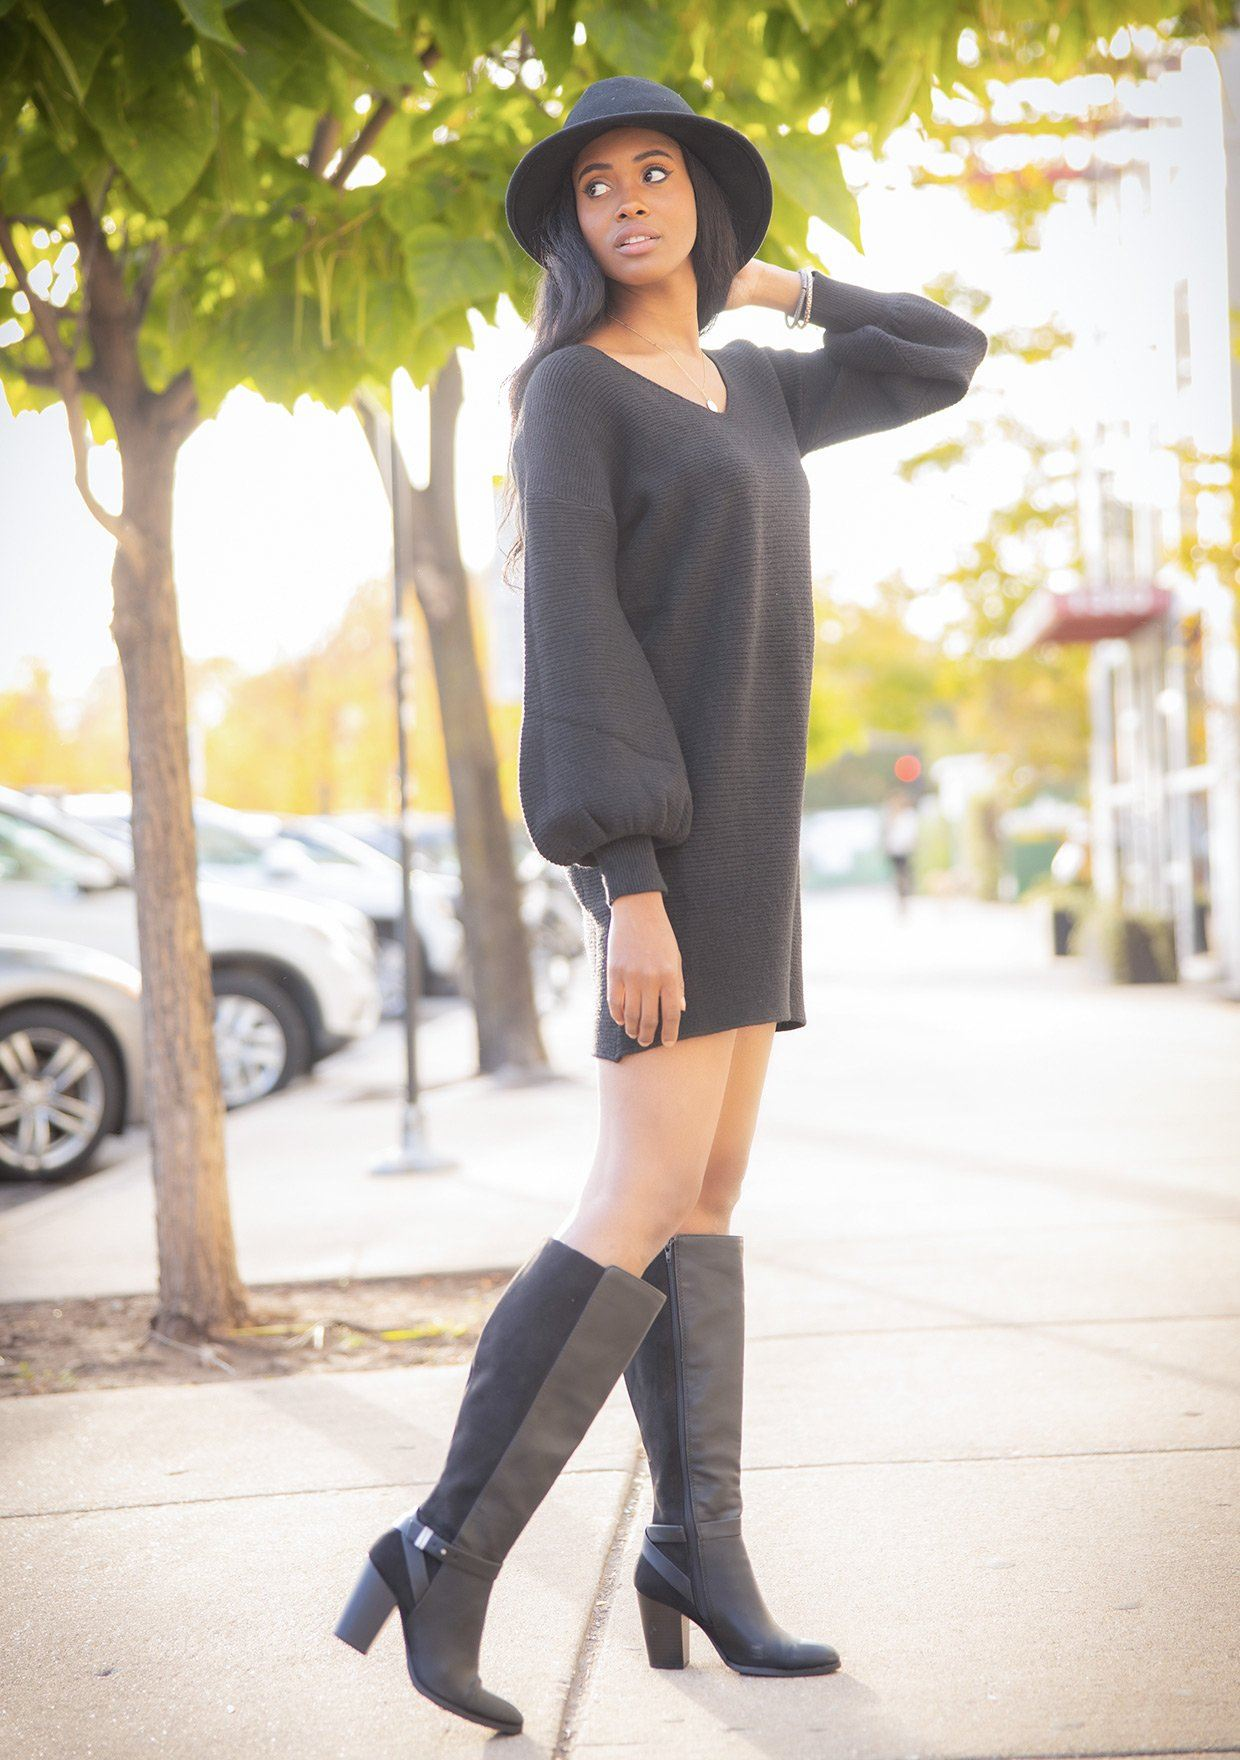 [Color: Black] A super soft ribbed sweater dress. A voluminous lantern sleeve and v neckline add interest to this warm and comfortable style. Styled here with knee high boots.